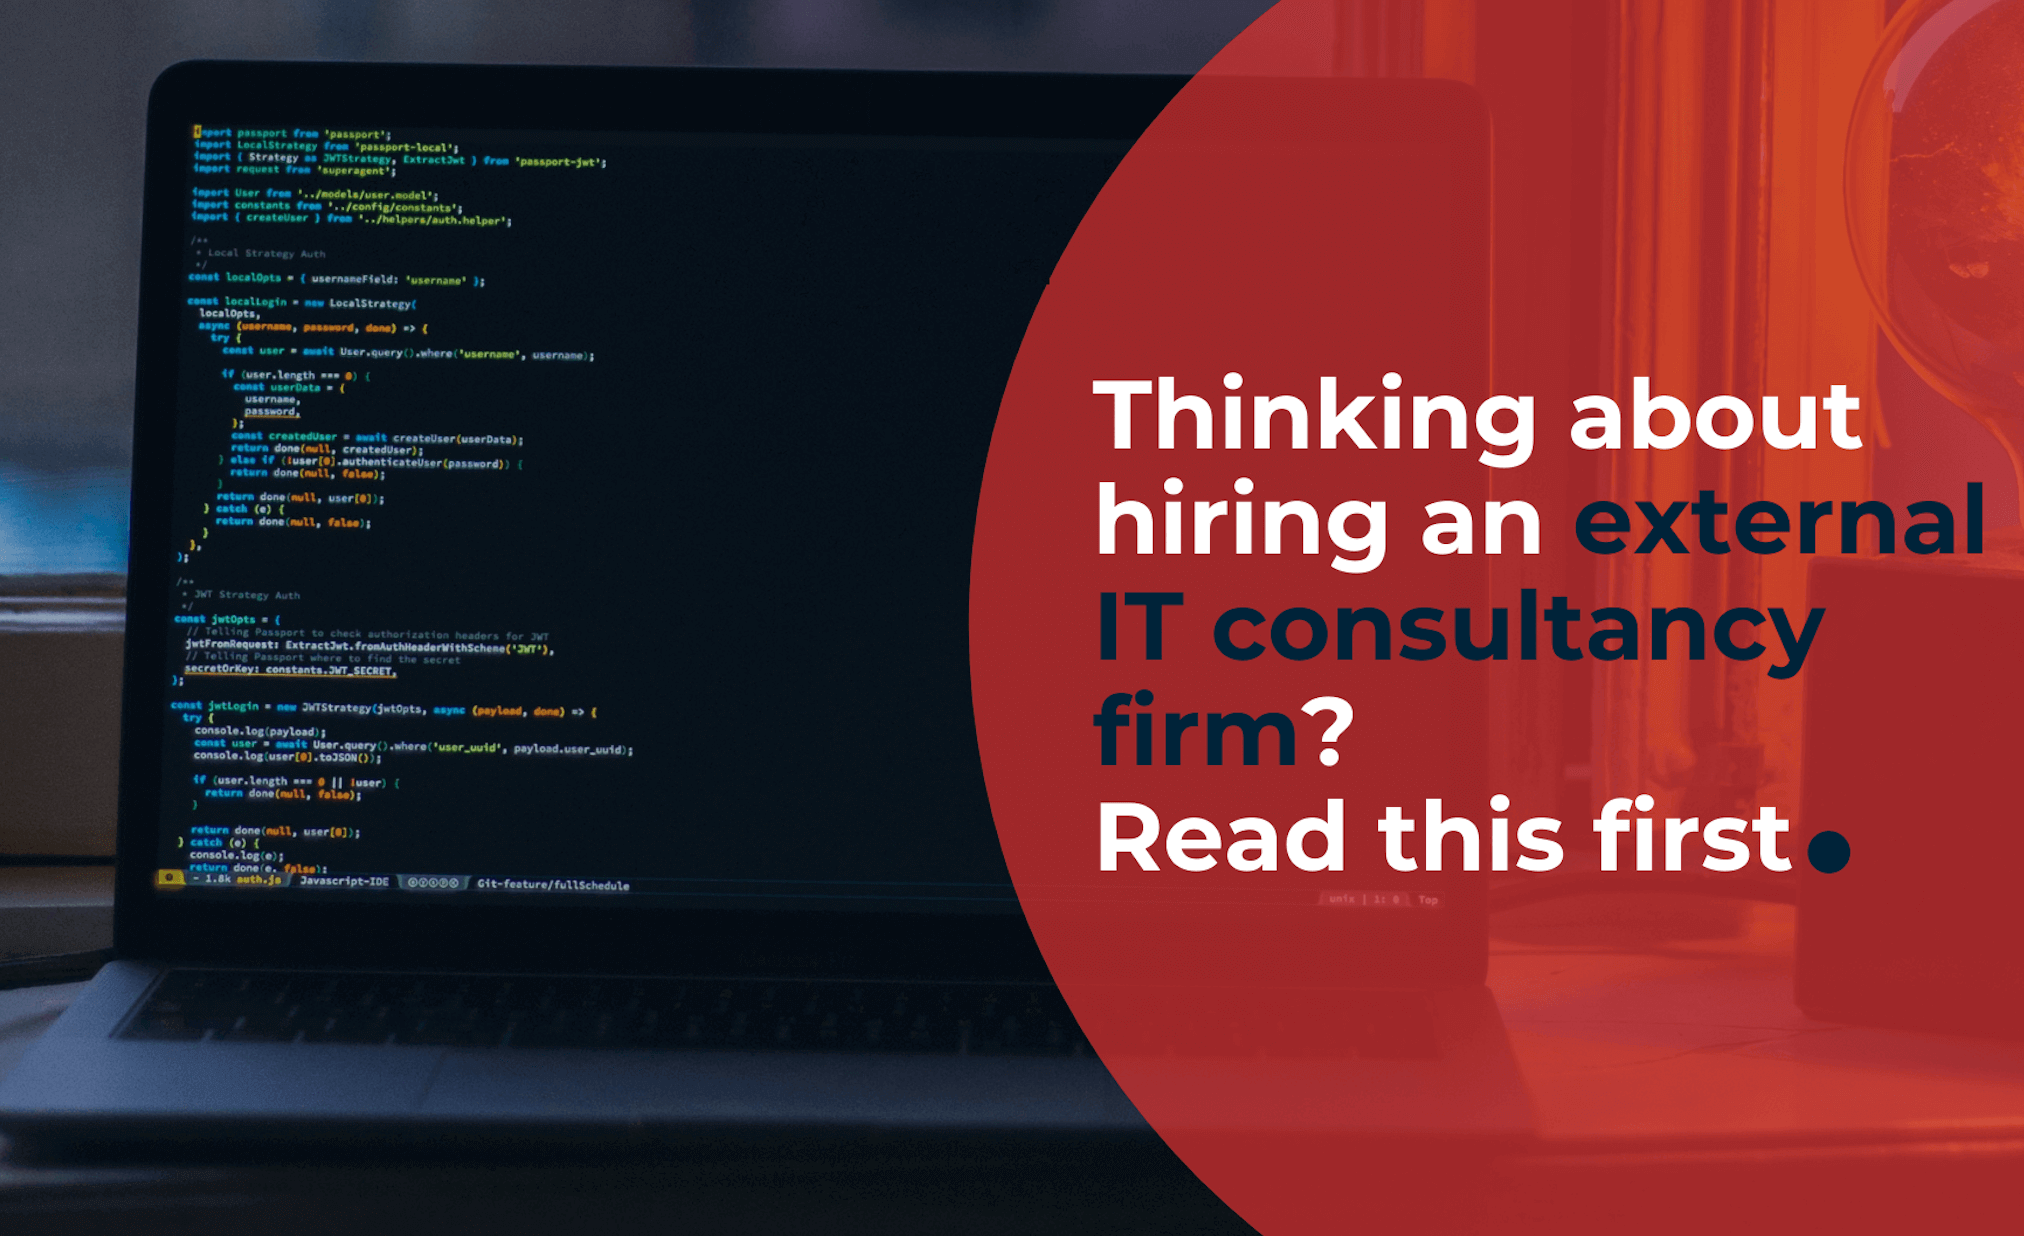 load blog post about hiring an external it consultancy firm